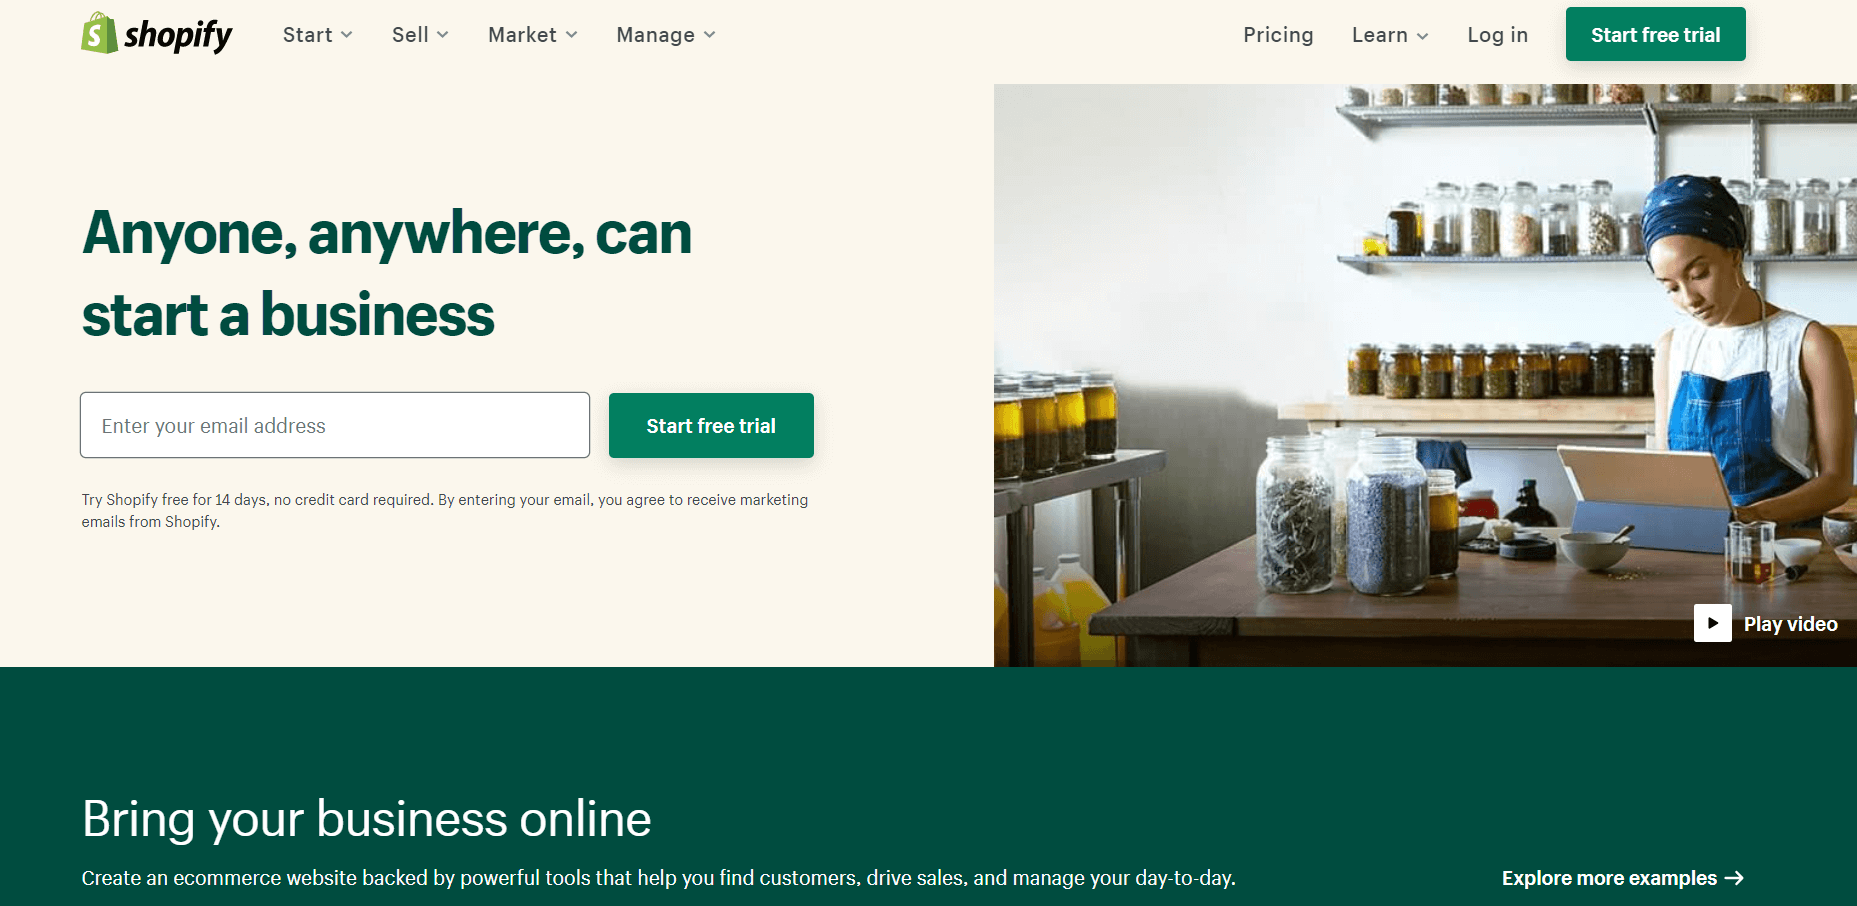 Shopify's homepage